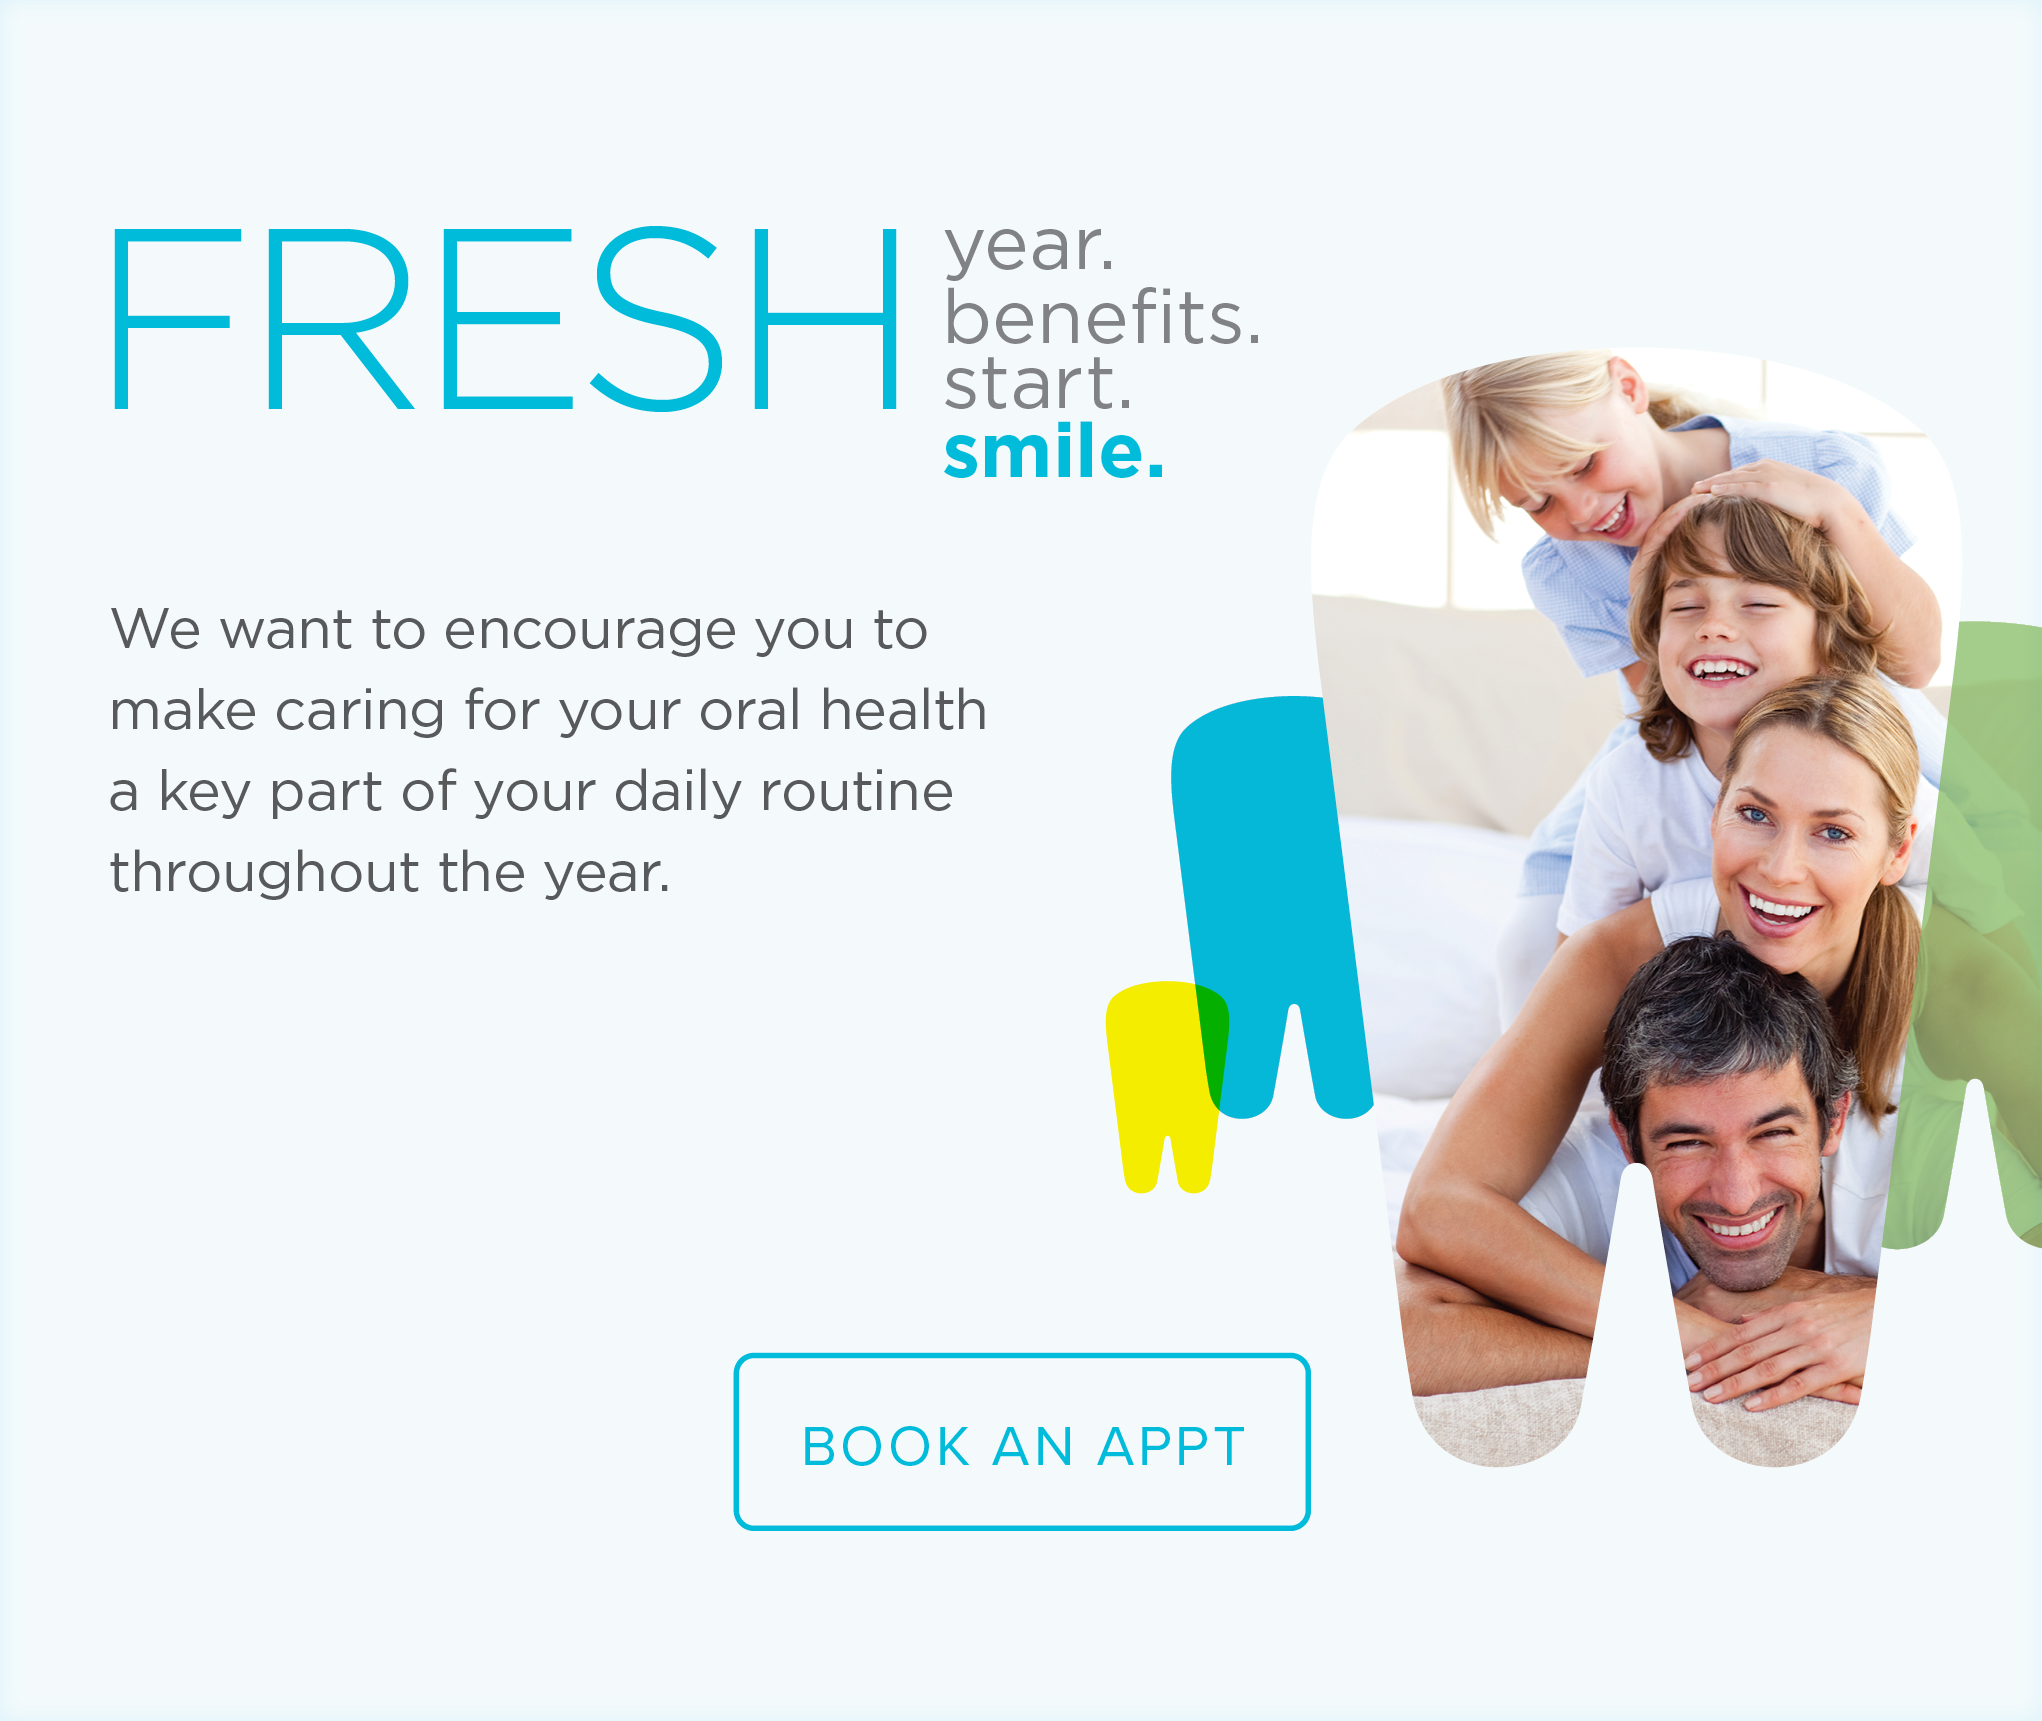 Livermore Smiles Dentistry and Orthodontics - Make the Most of Your Benefits